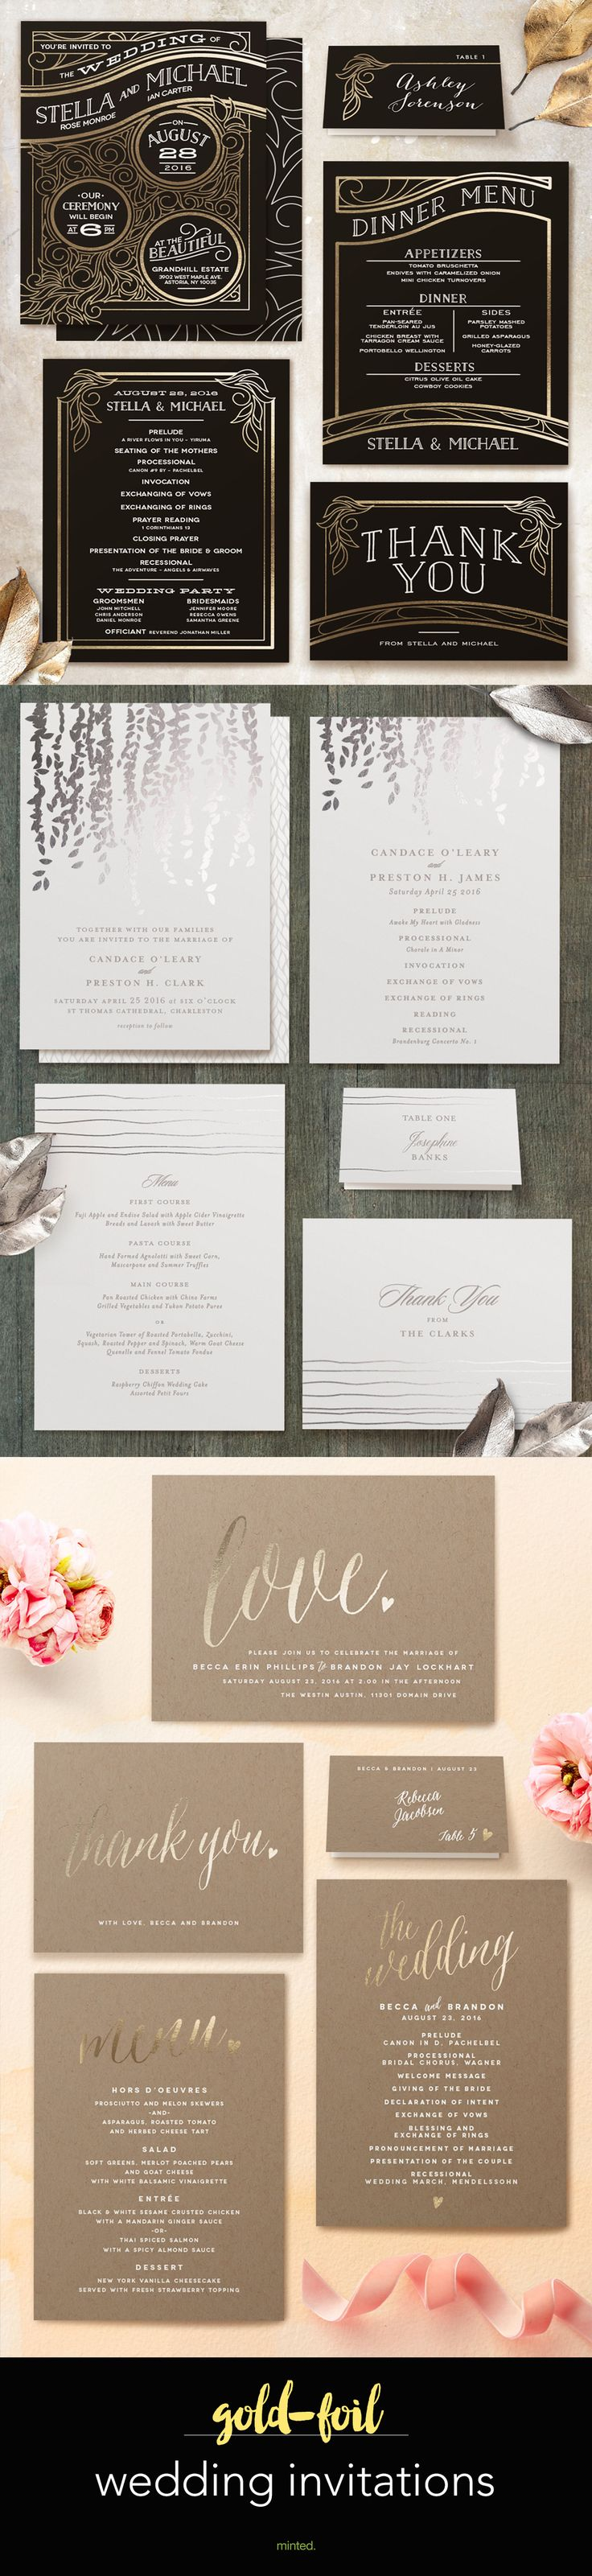 marriage invitation sms on mobile%0A   gorgeous gold wedding invitations with programs  place cards  and menus  from Minted